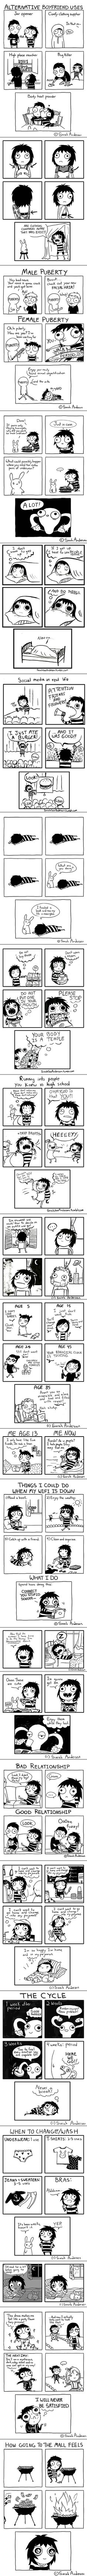 Girl's Problems And Everyday Lives In Hilariously Honest Comics (By Sarah Andersen) - 9GAG